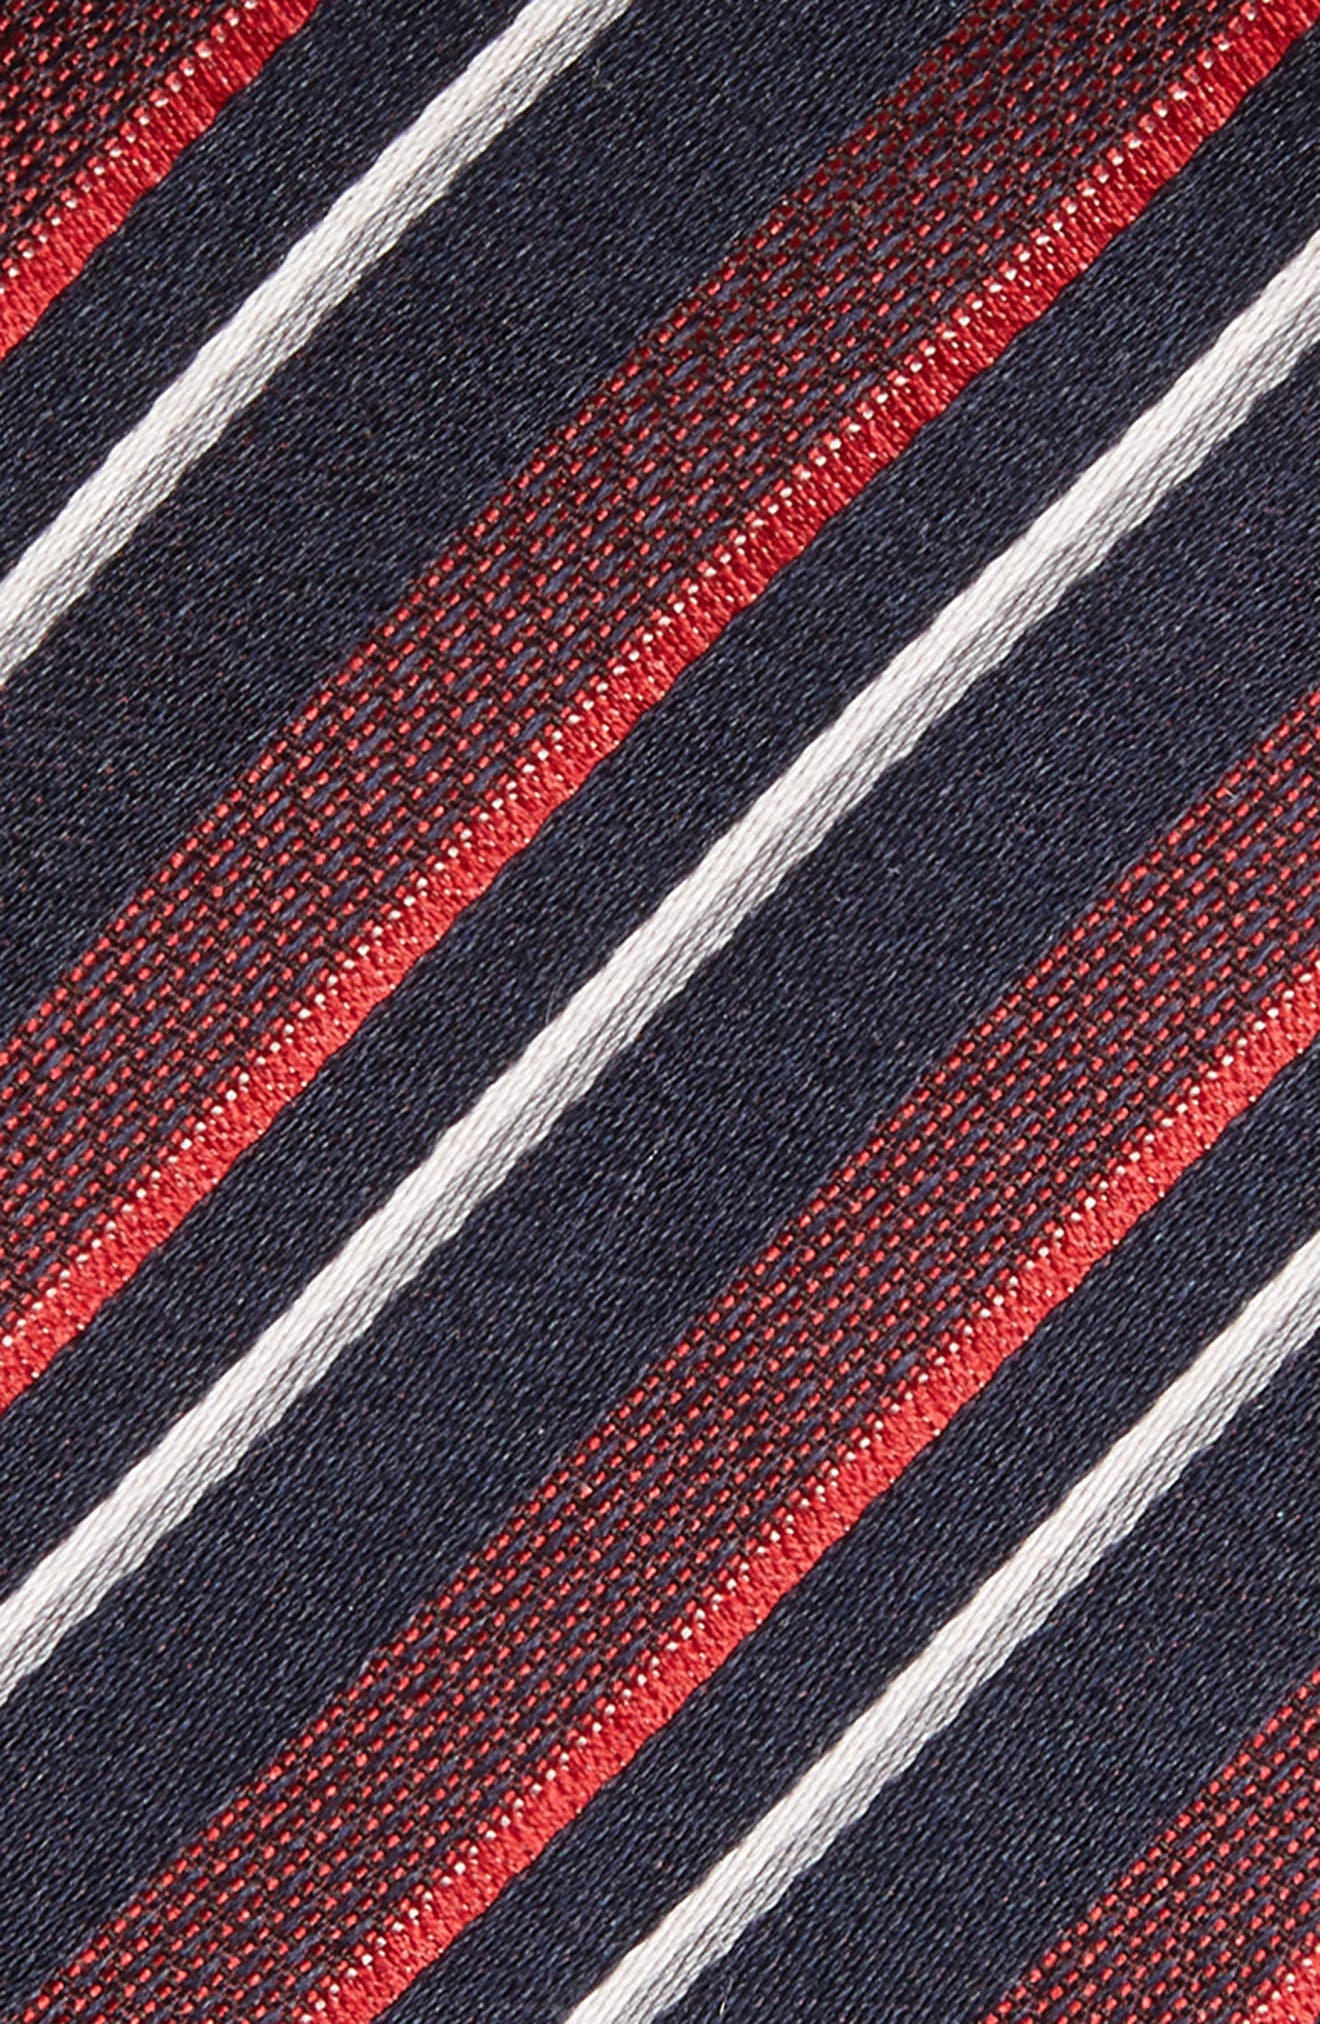 Alternate Image 2  - BOSS Stripe Silk Tie